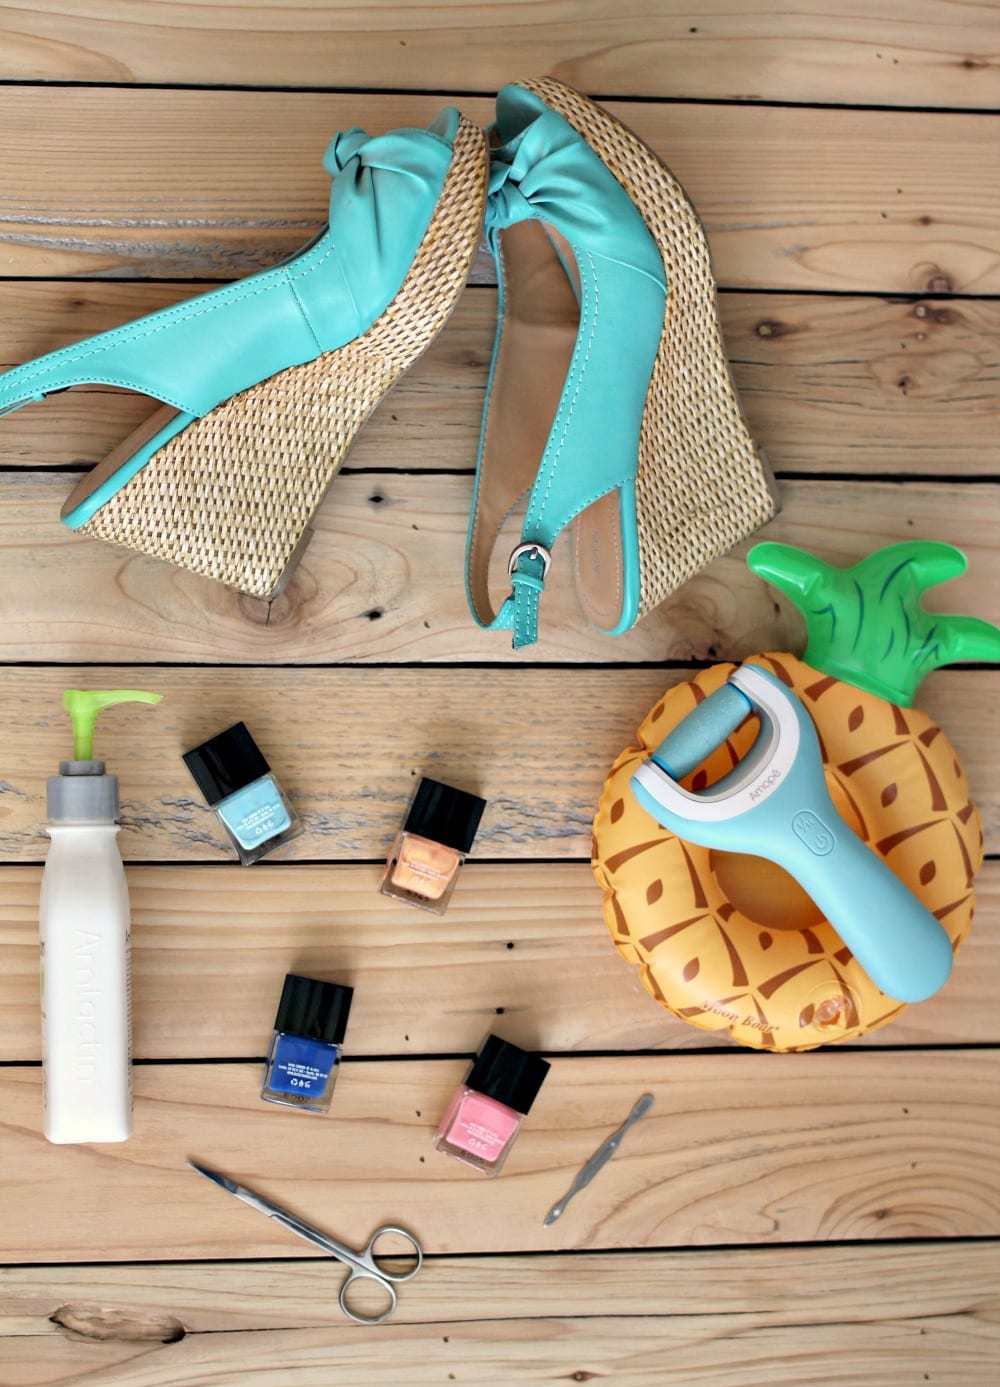 Using Amope Foot Care Products for the Best At-Home Pedicure You've Ever Had